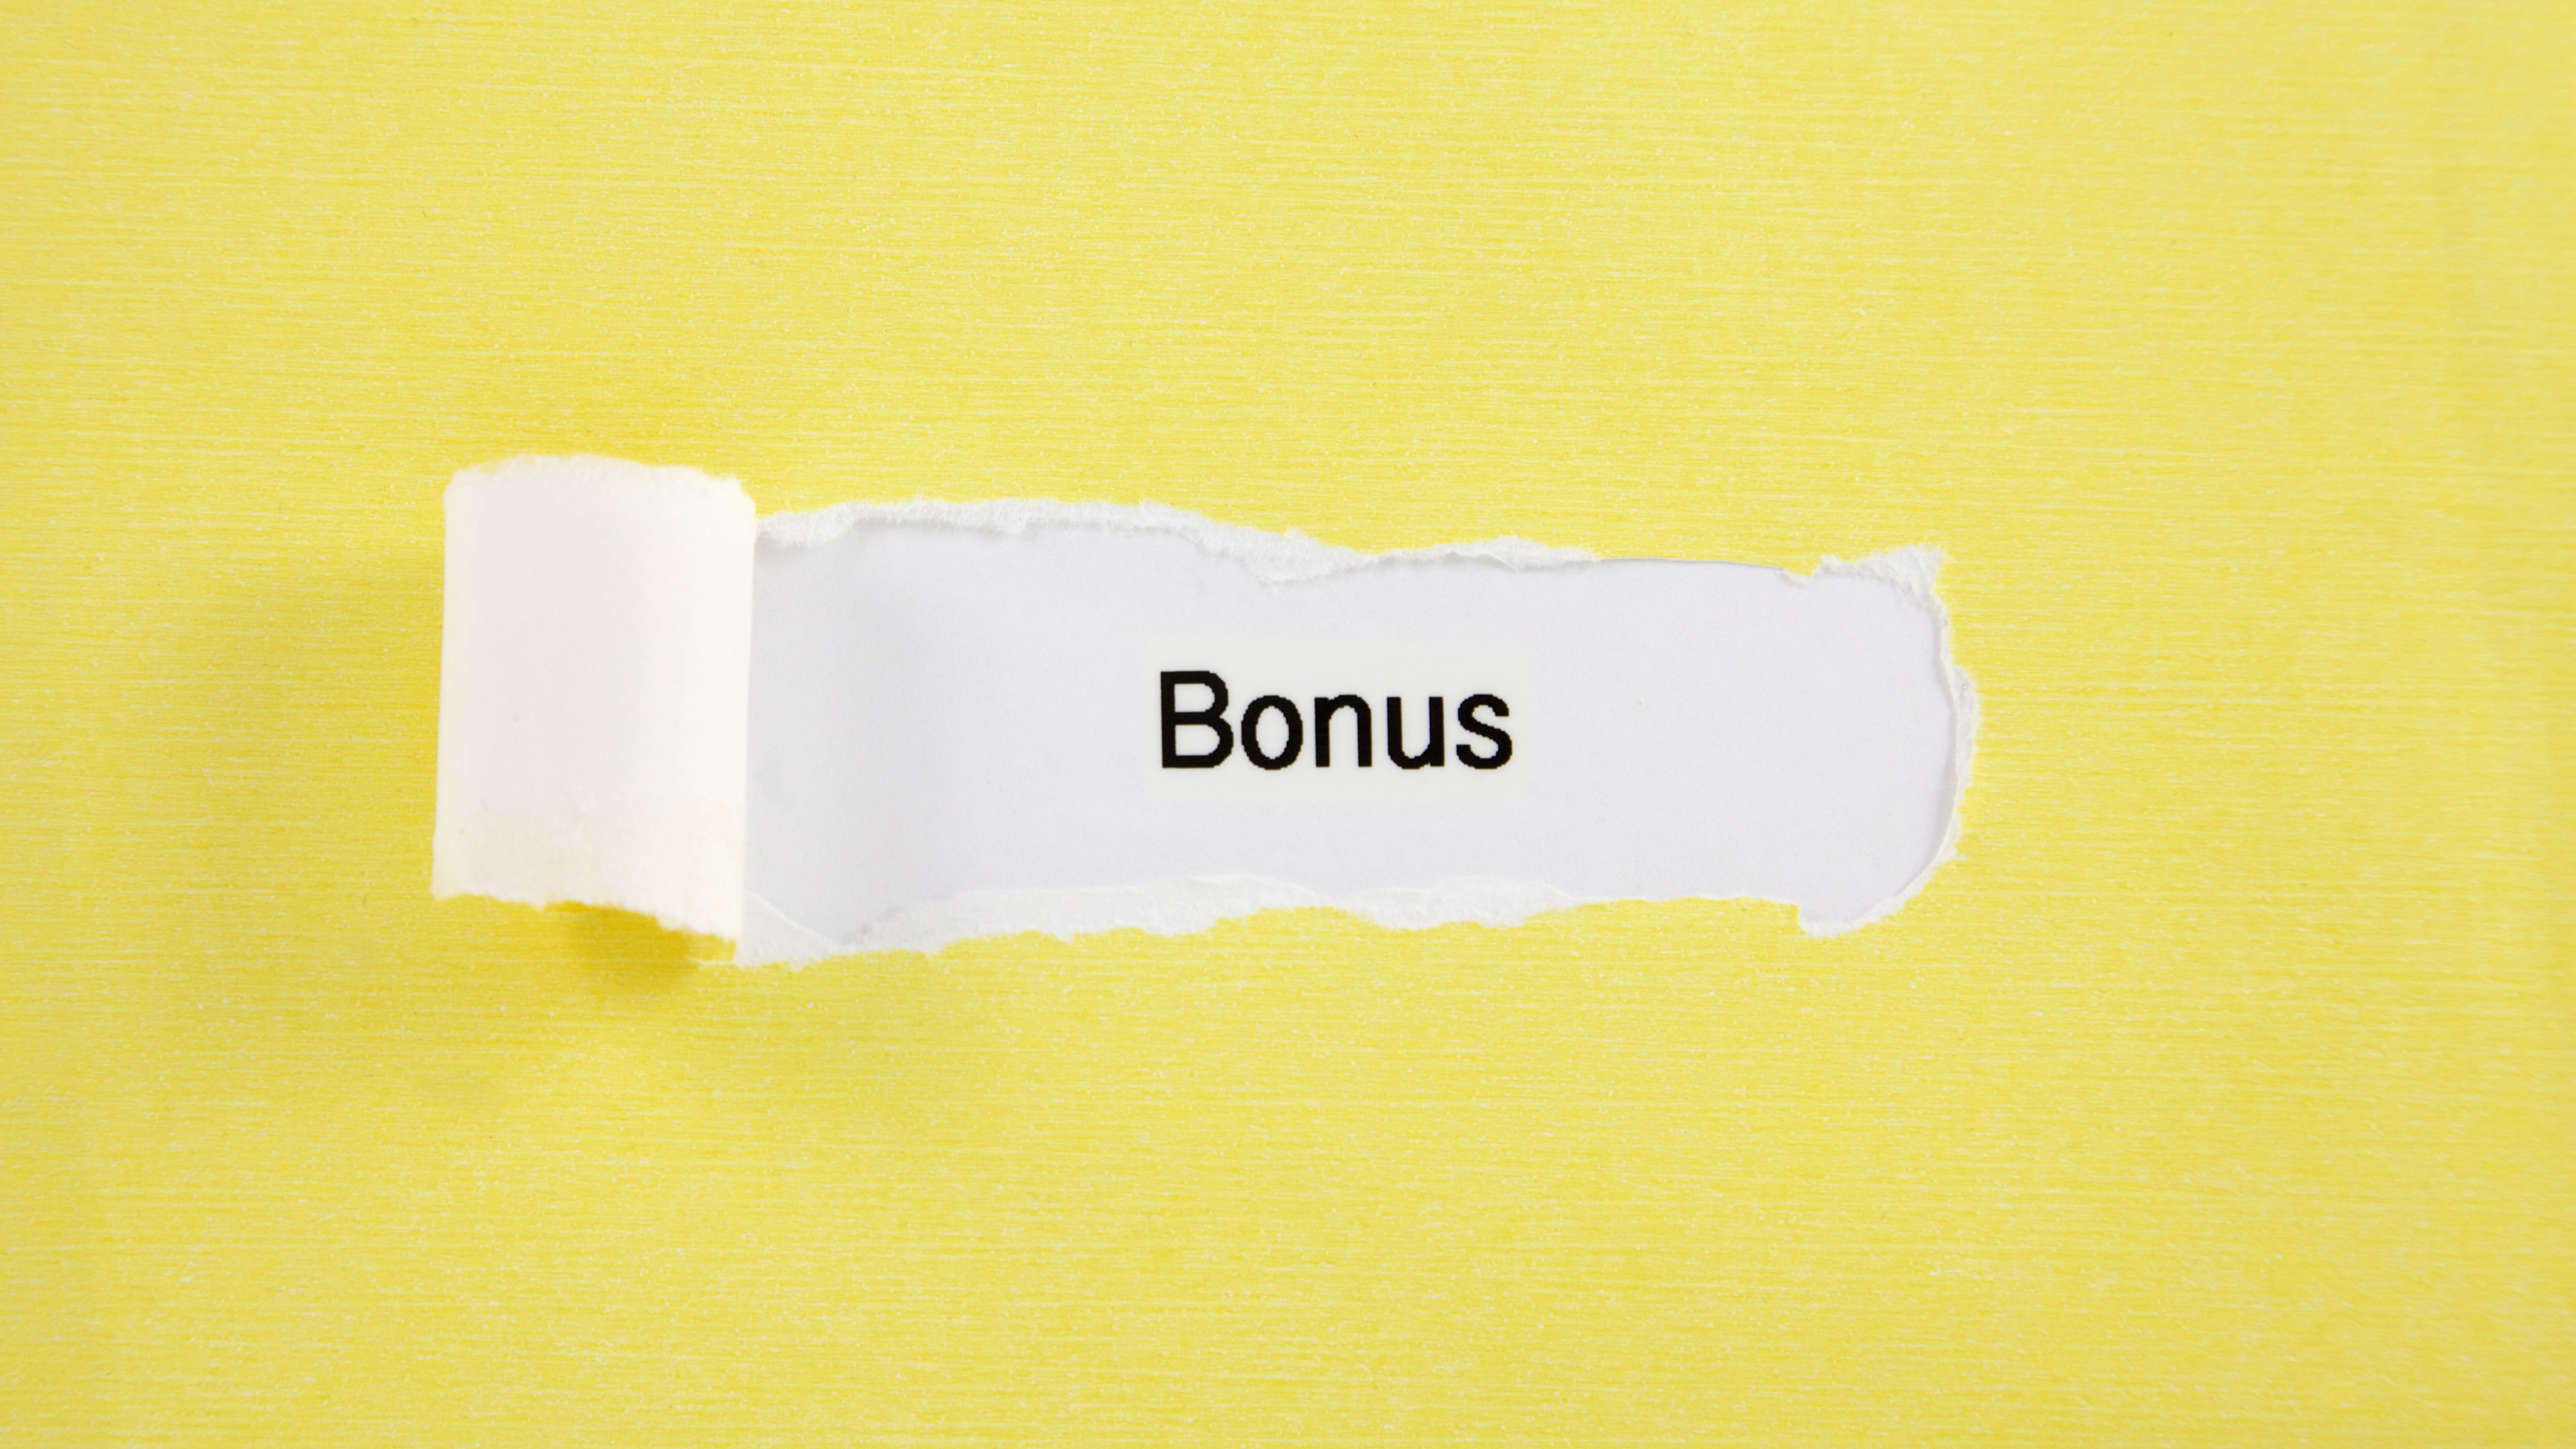 What Is a Bonus and Why Might an Employer Provide One?